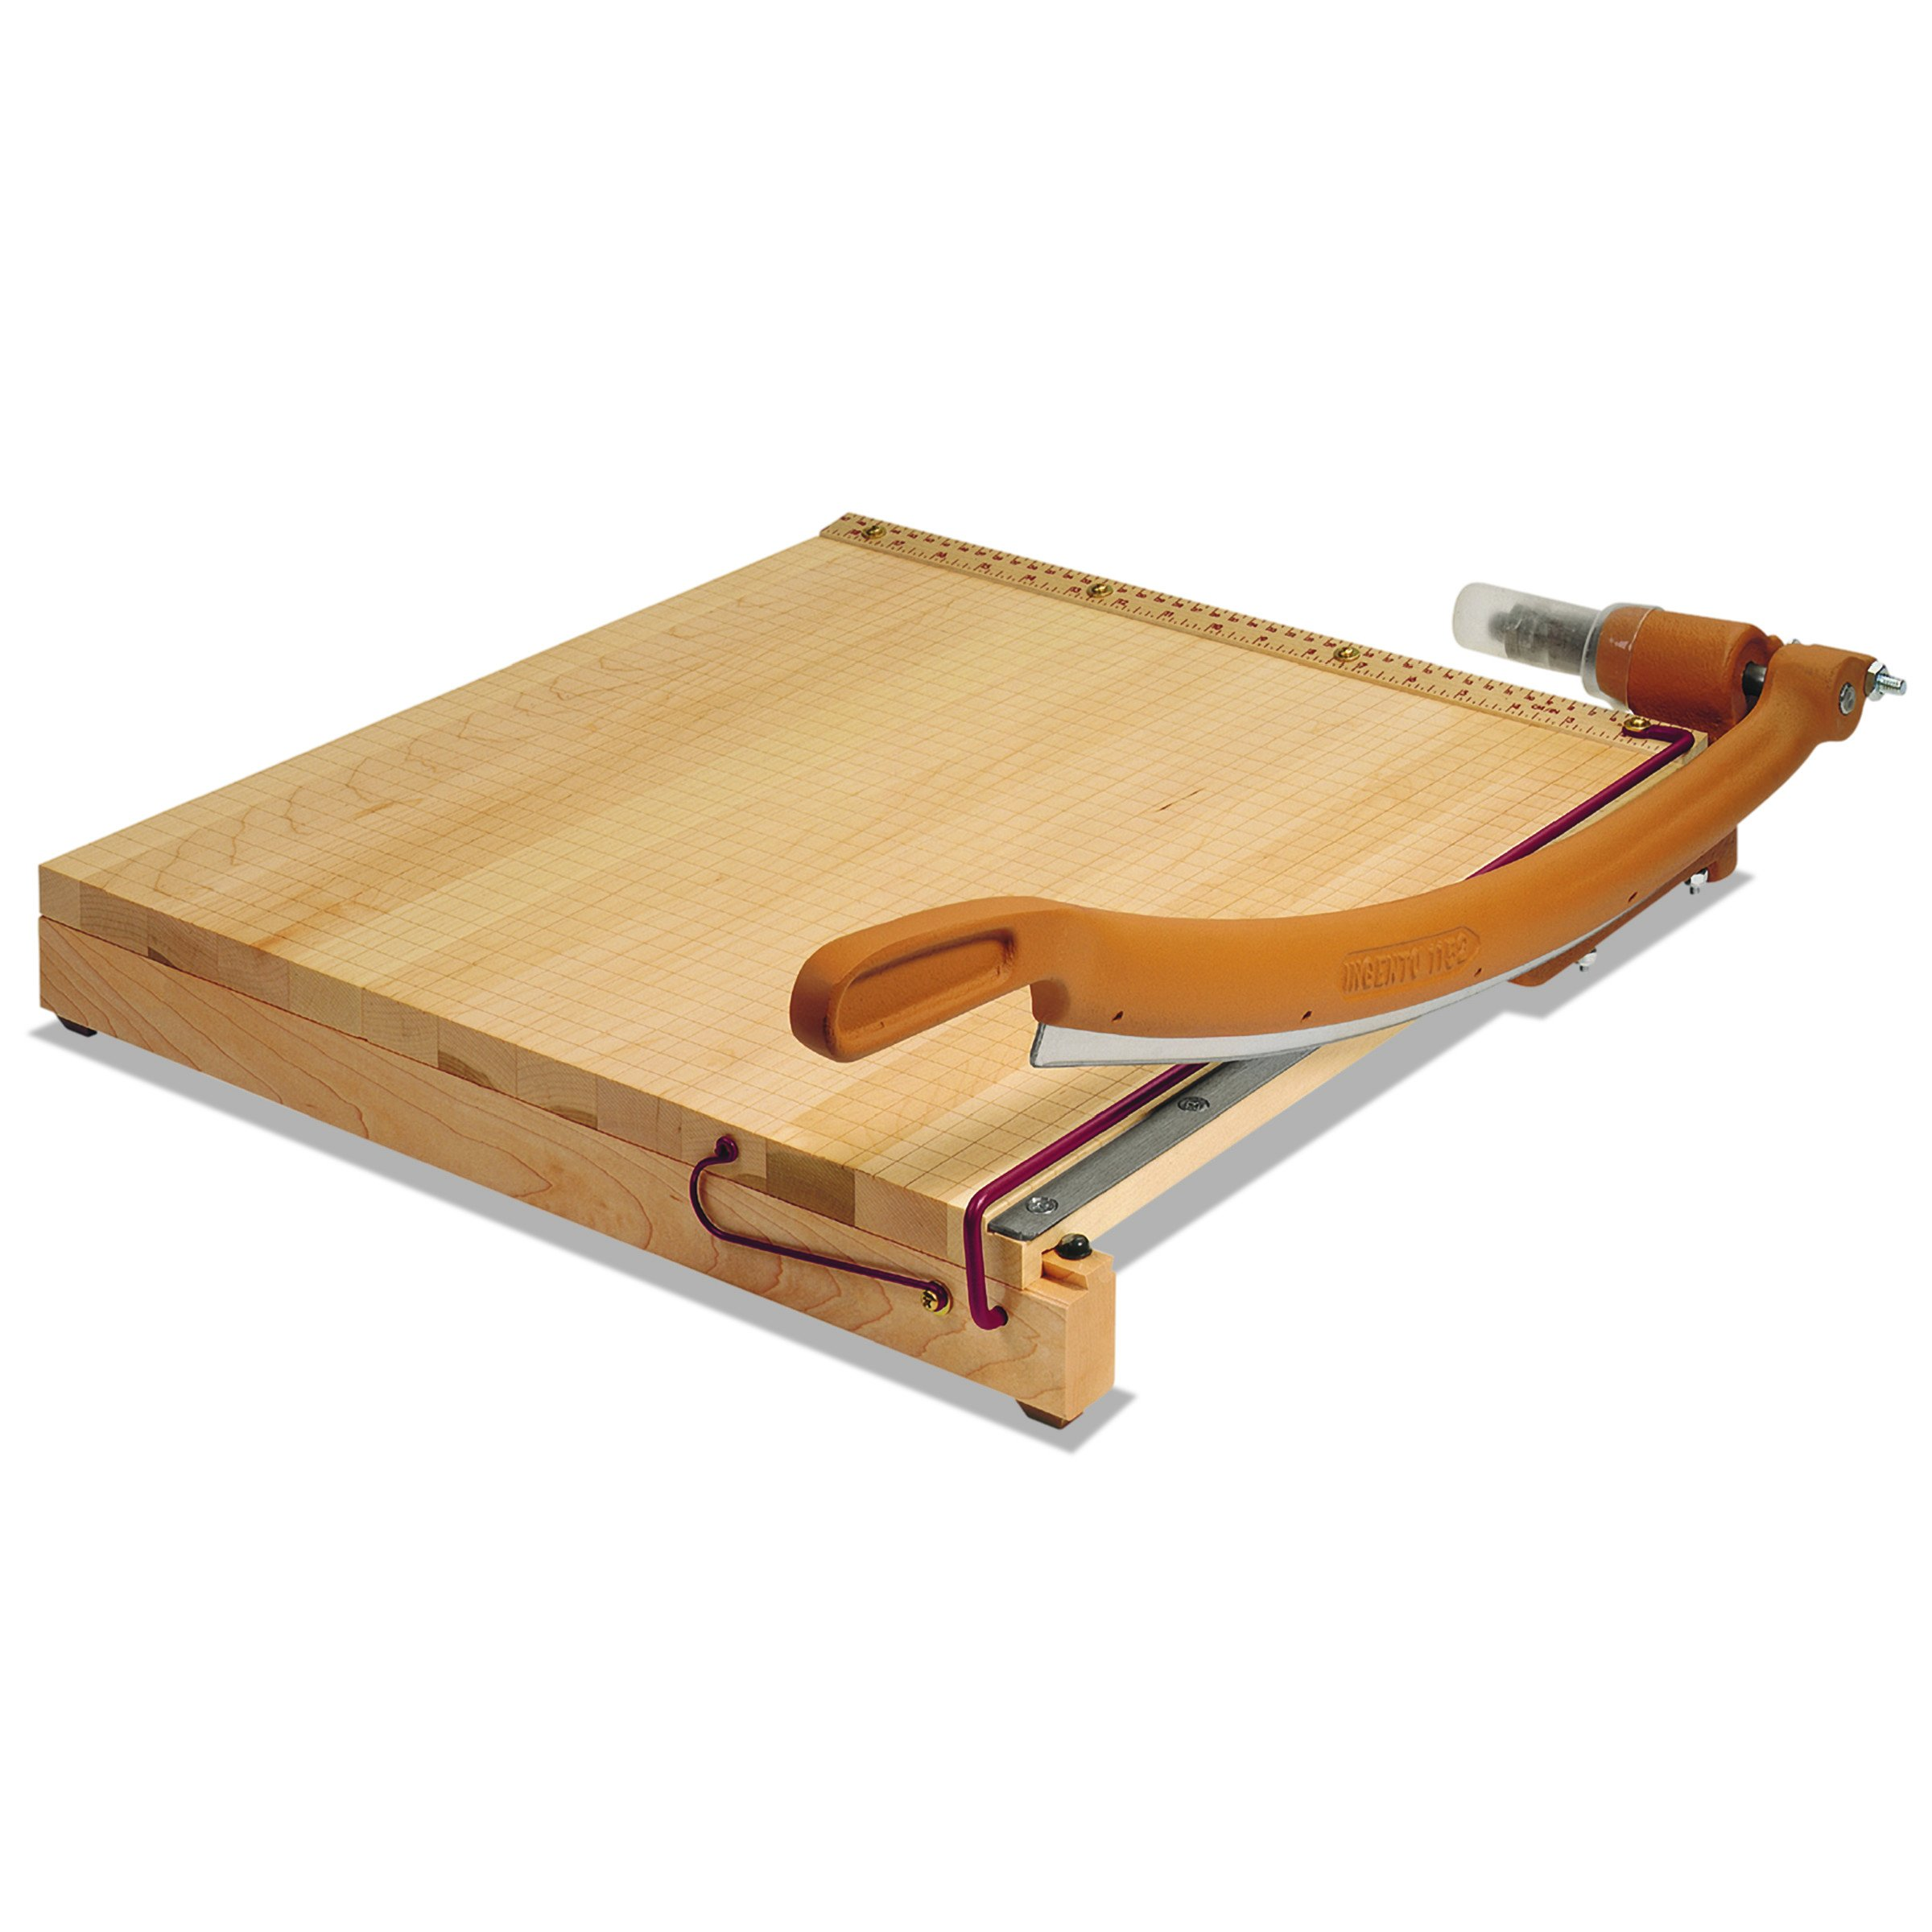 Swingline 1142 ClassicCut Ingento Solid Maple Paper Trimmer, 15 Sheets, Maple Base, 15 x 15